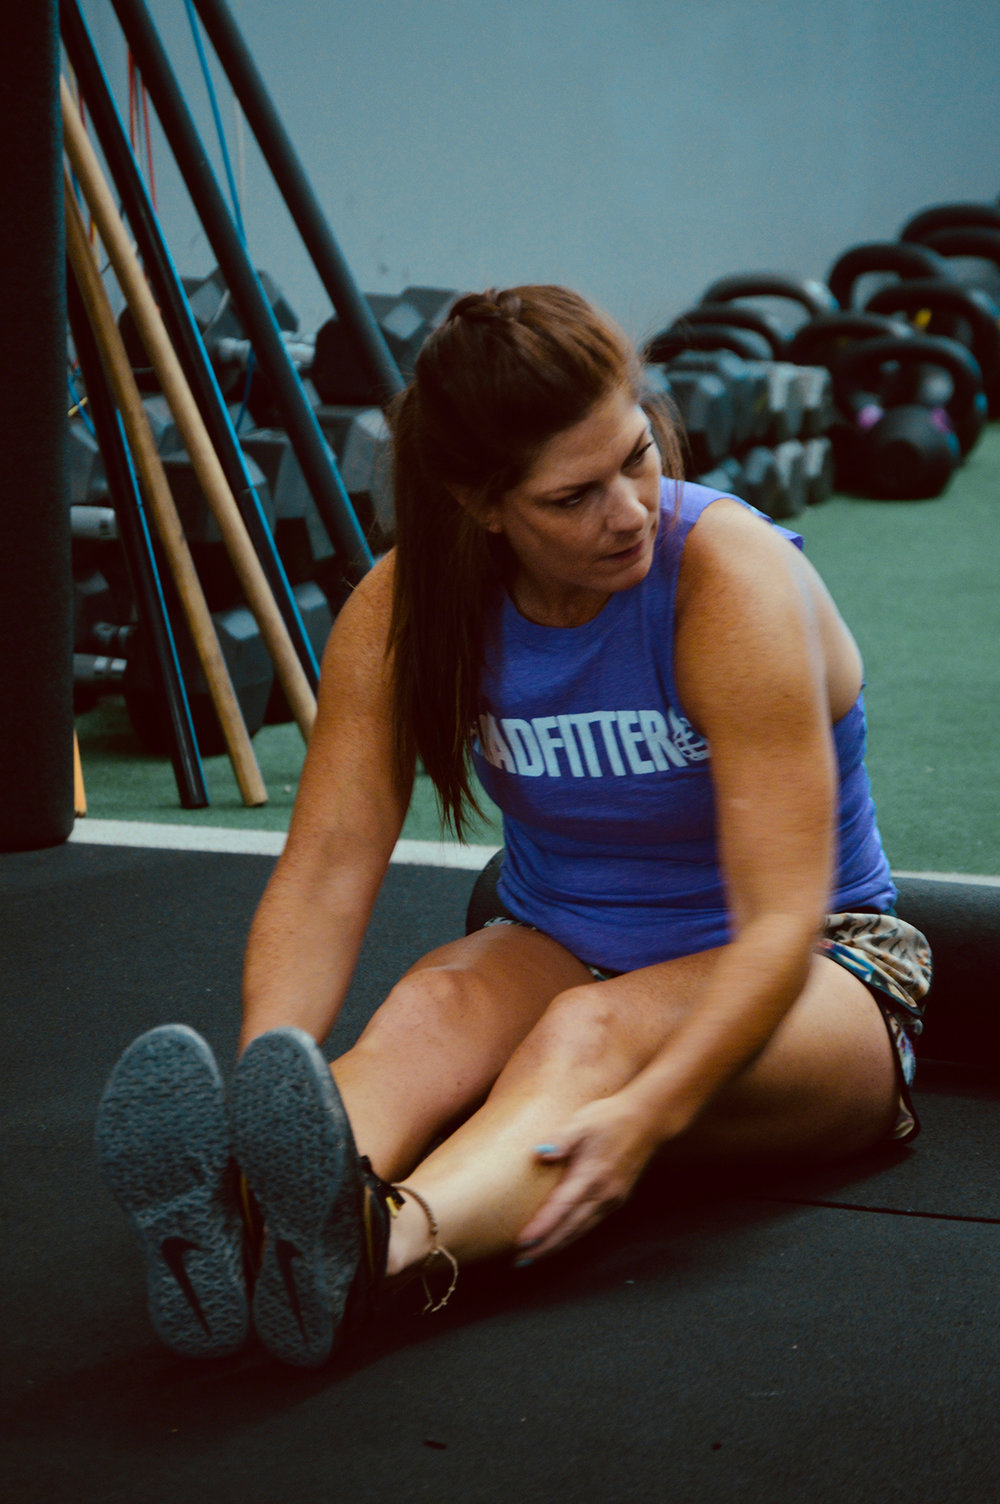 Cara Garcia - Crossfit, Endurance.   Cara has been training CrossFit since 2014. She currently holds her CrossFit level I.